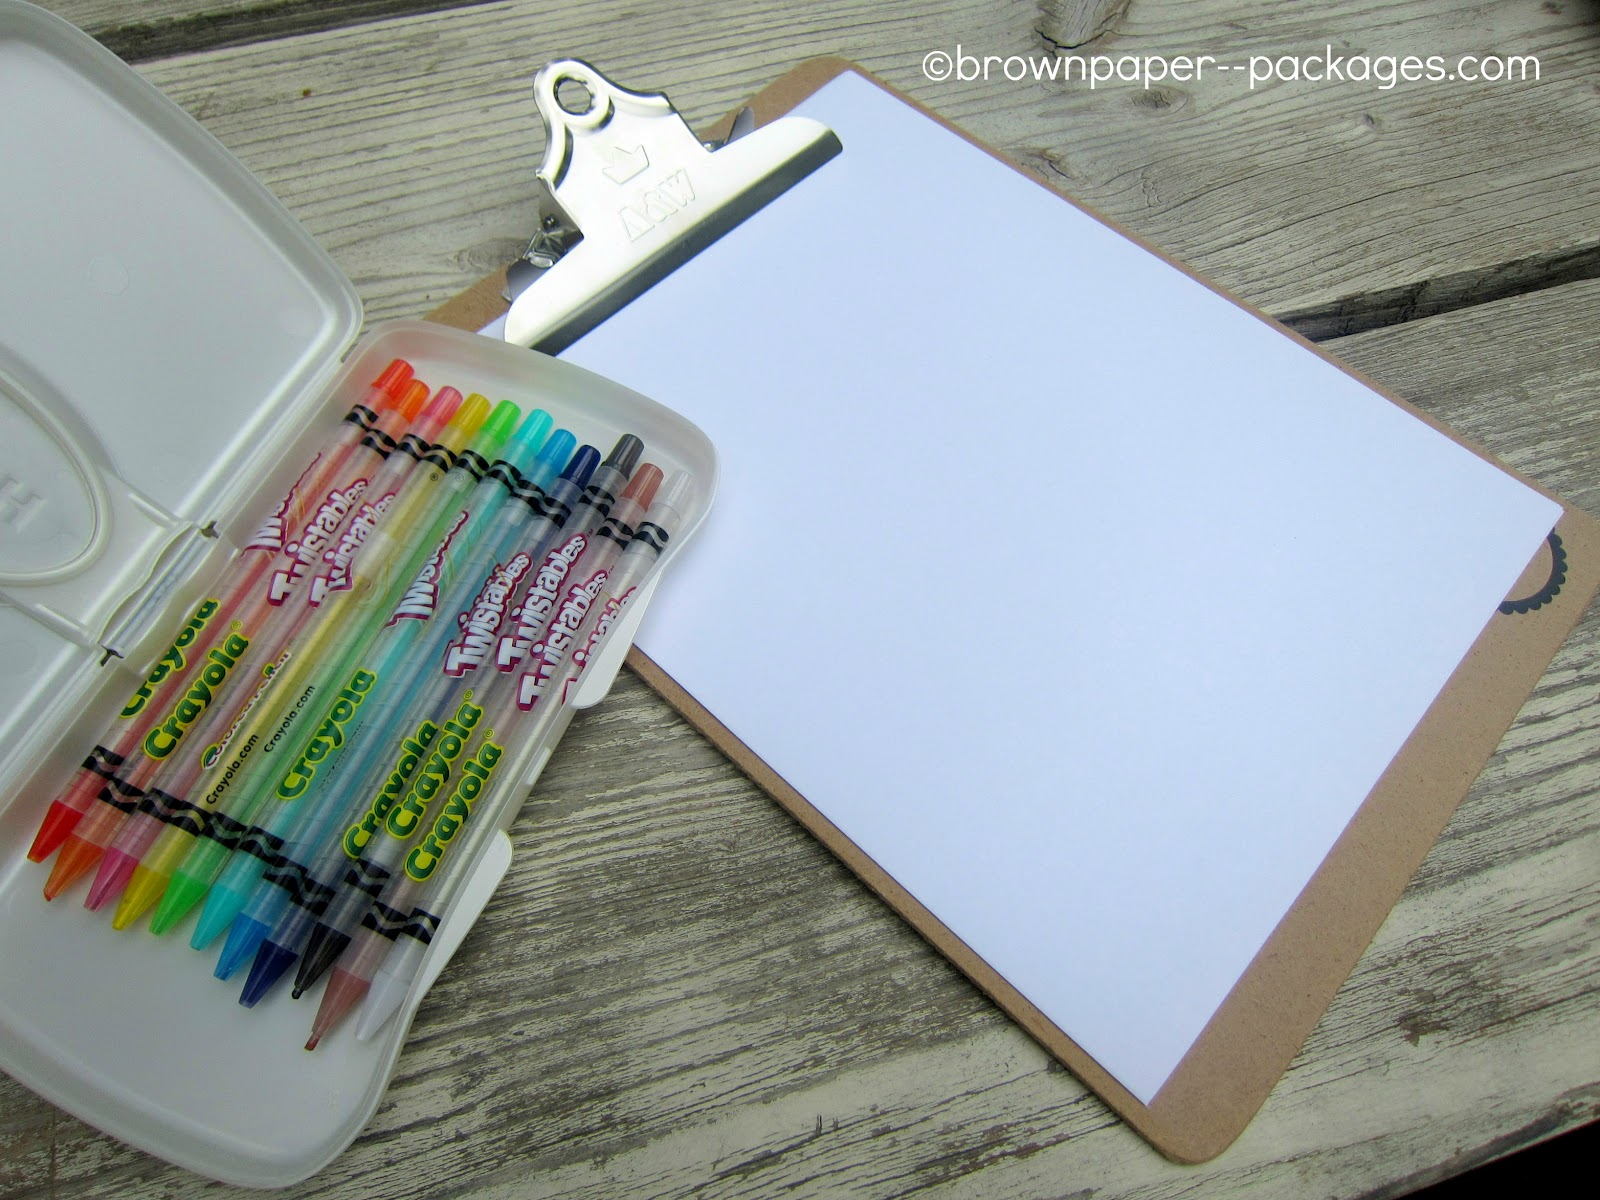 clipboards + wipes cases = easy coloring kits for kids} - Old Salt Farm